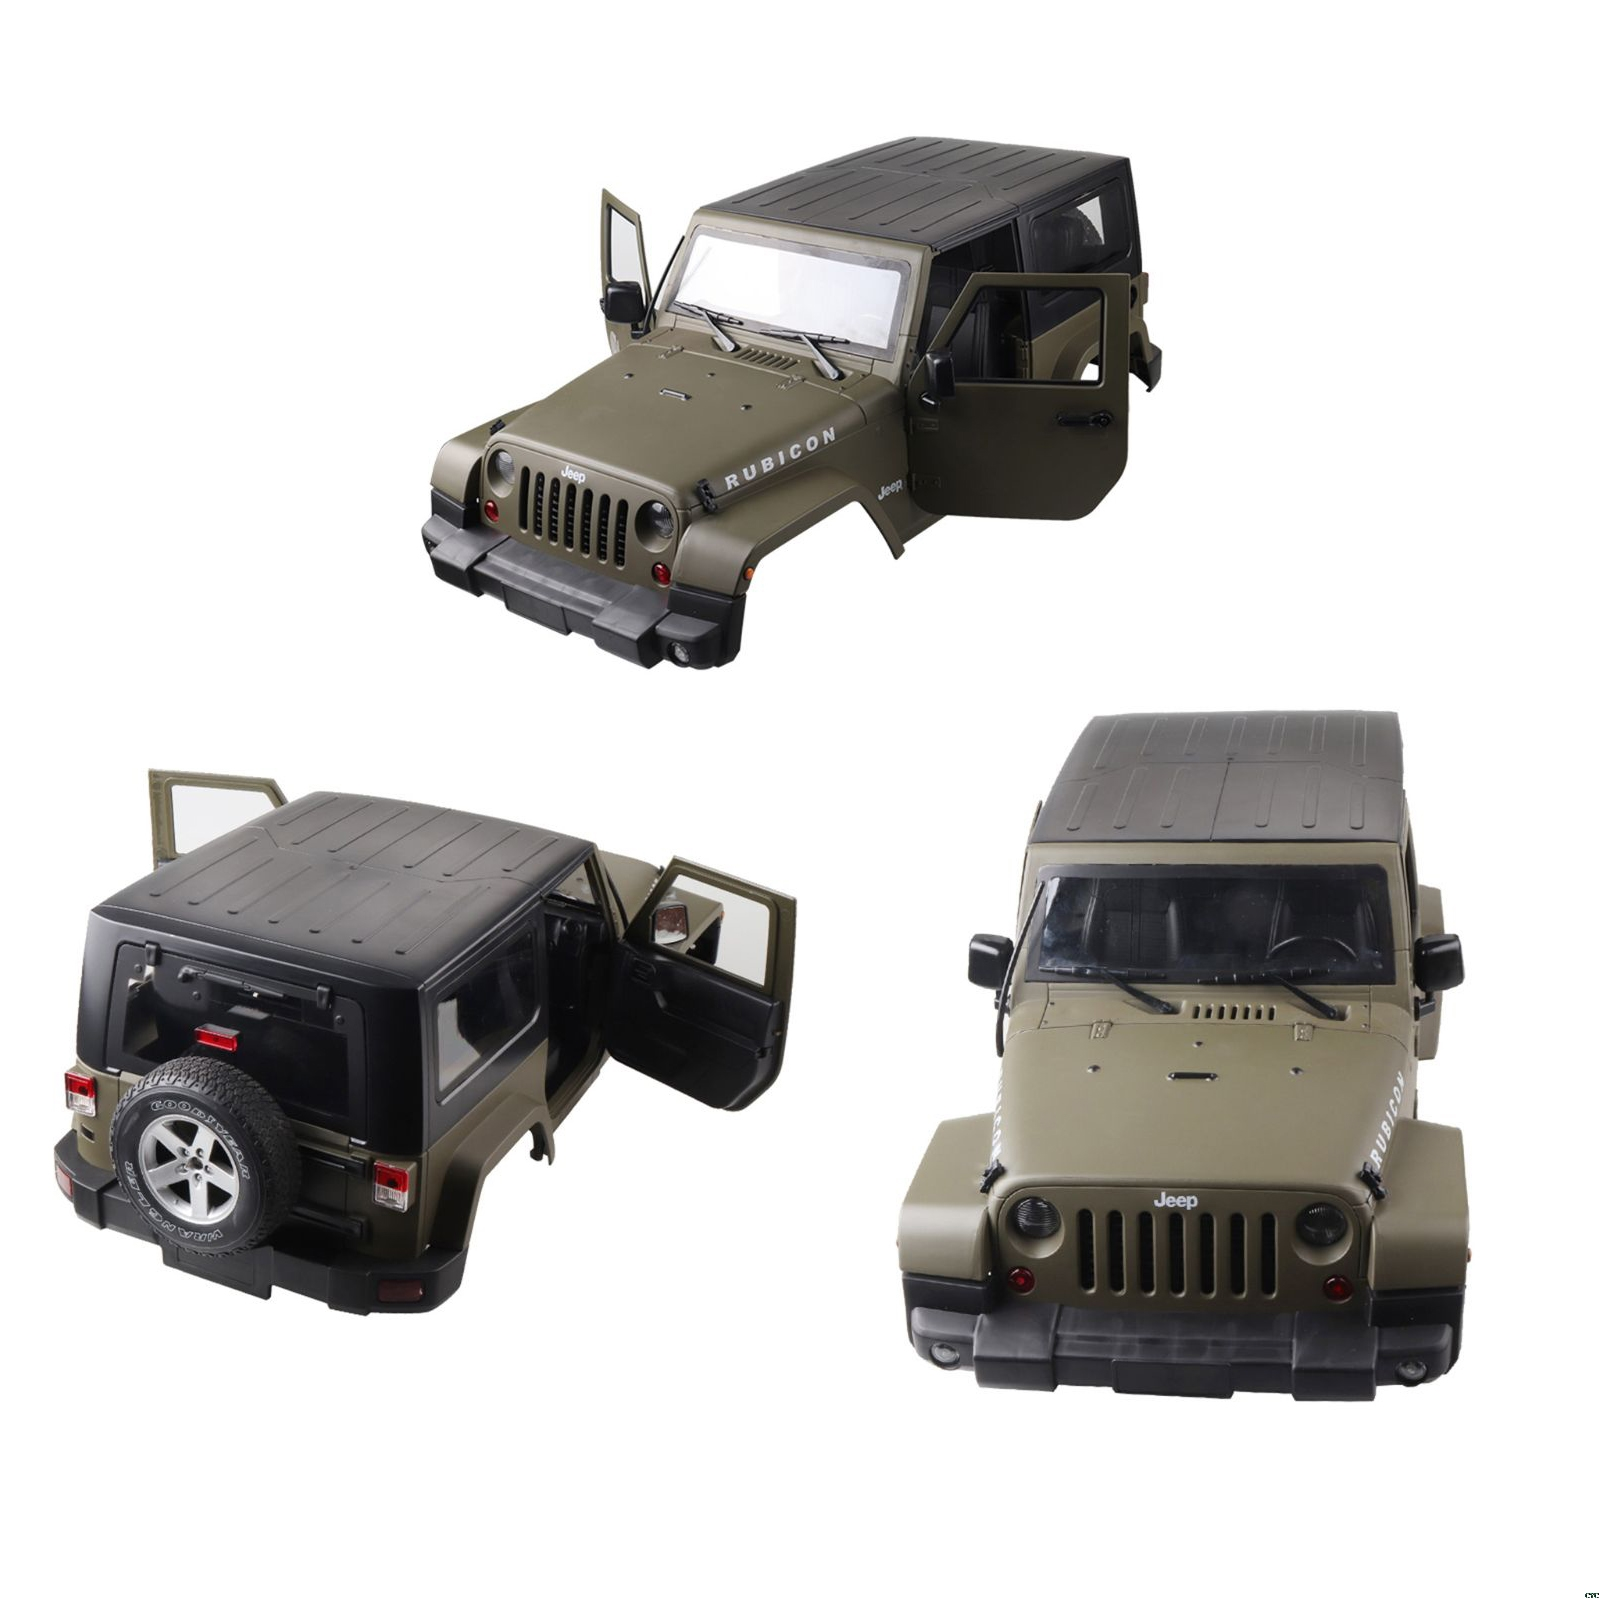 1:10 RC Scale Truck Climbing Car Hard Body Shell For Wrangler Jeep Model Car Shell Holder Toys Accessories1:10 RC Scale Truck Climbing Car Hard Body Shell For Wrangler Jeep Model Car Shell Holder Toys Accessories